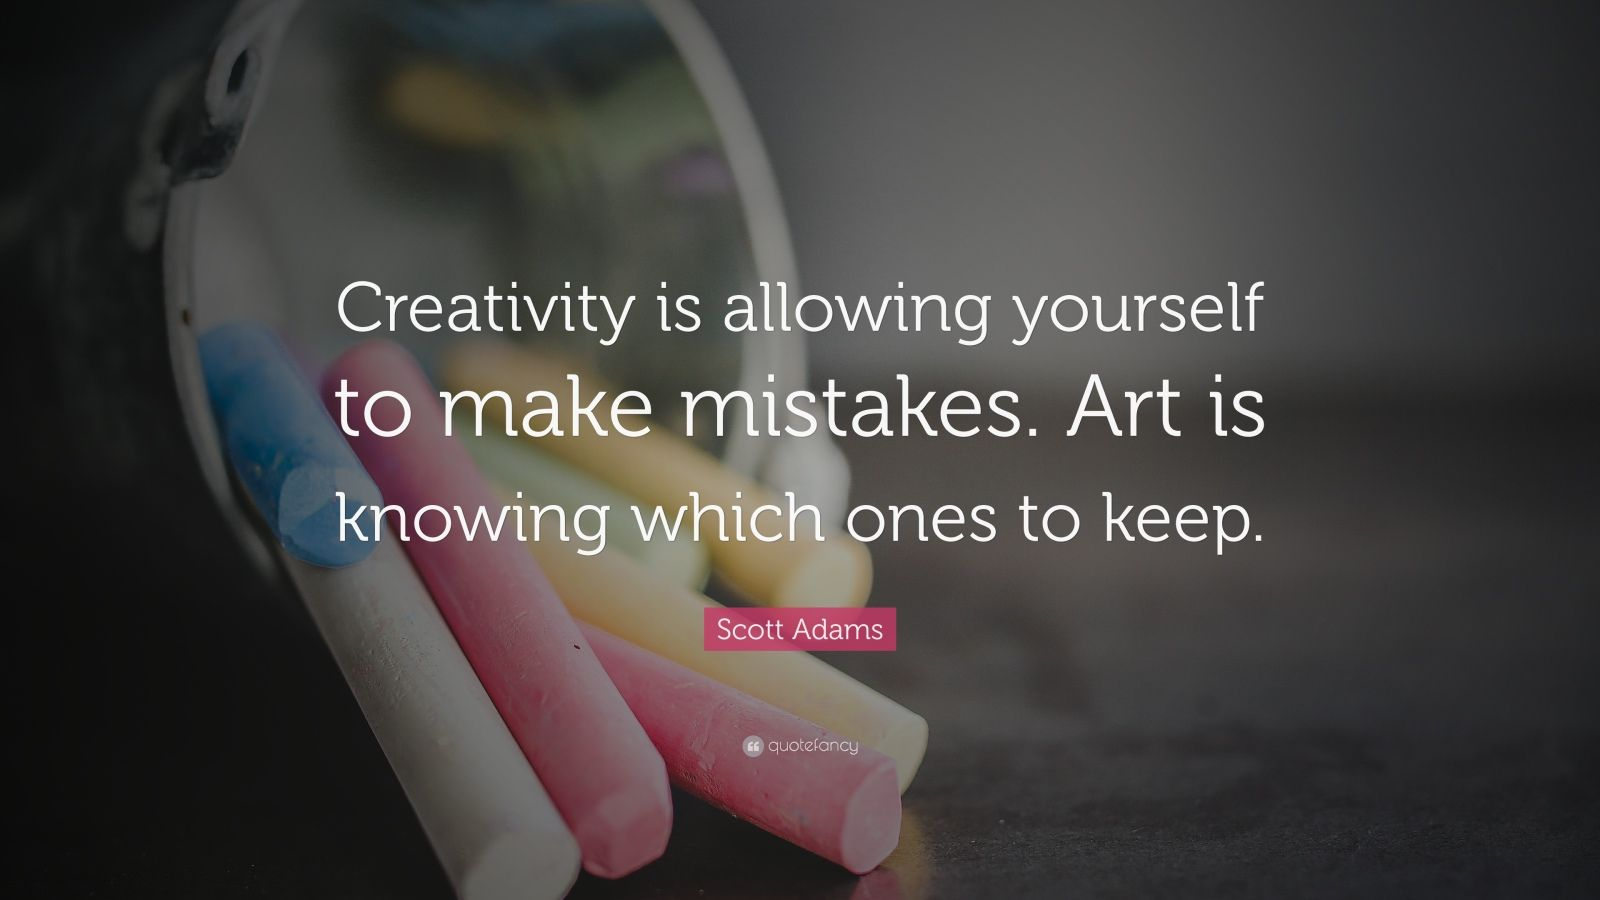 "Creativity Quotes: ""Creativity is allowing yourself to make mistakes. Art is knowing which ones to keep."" — Scott Adams"